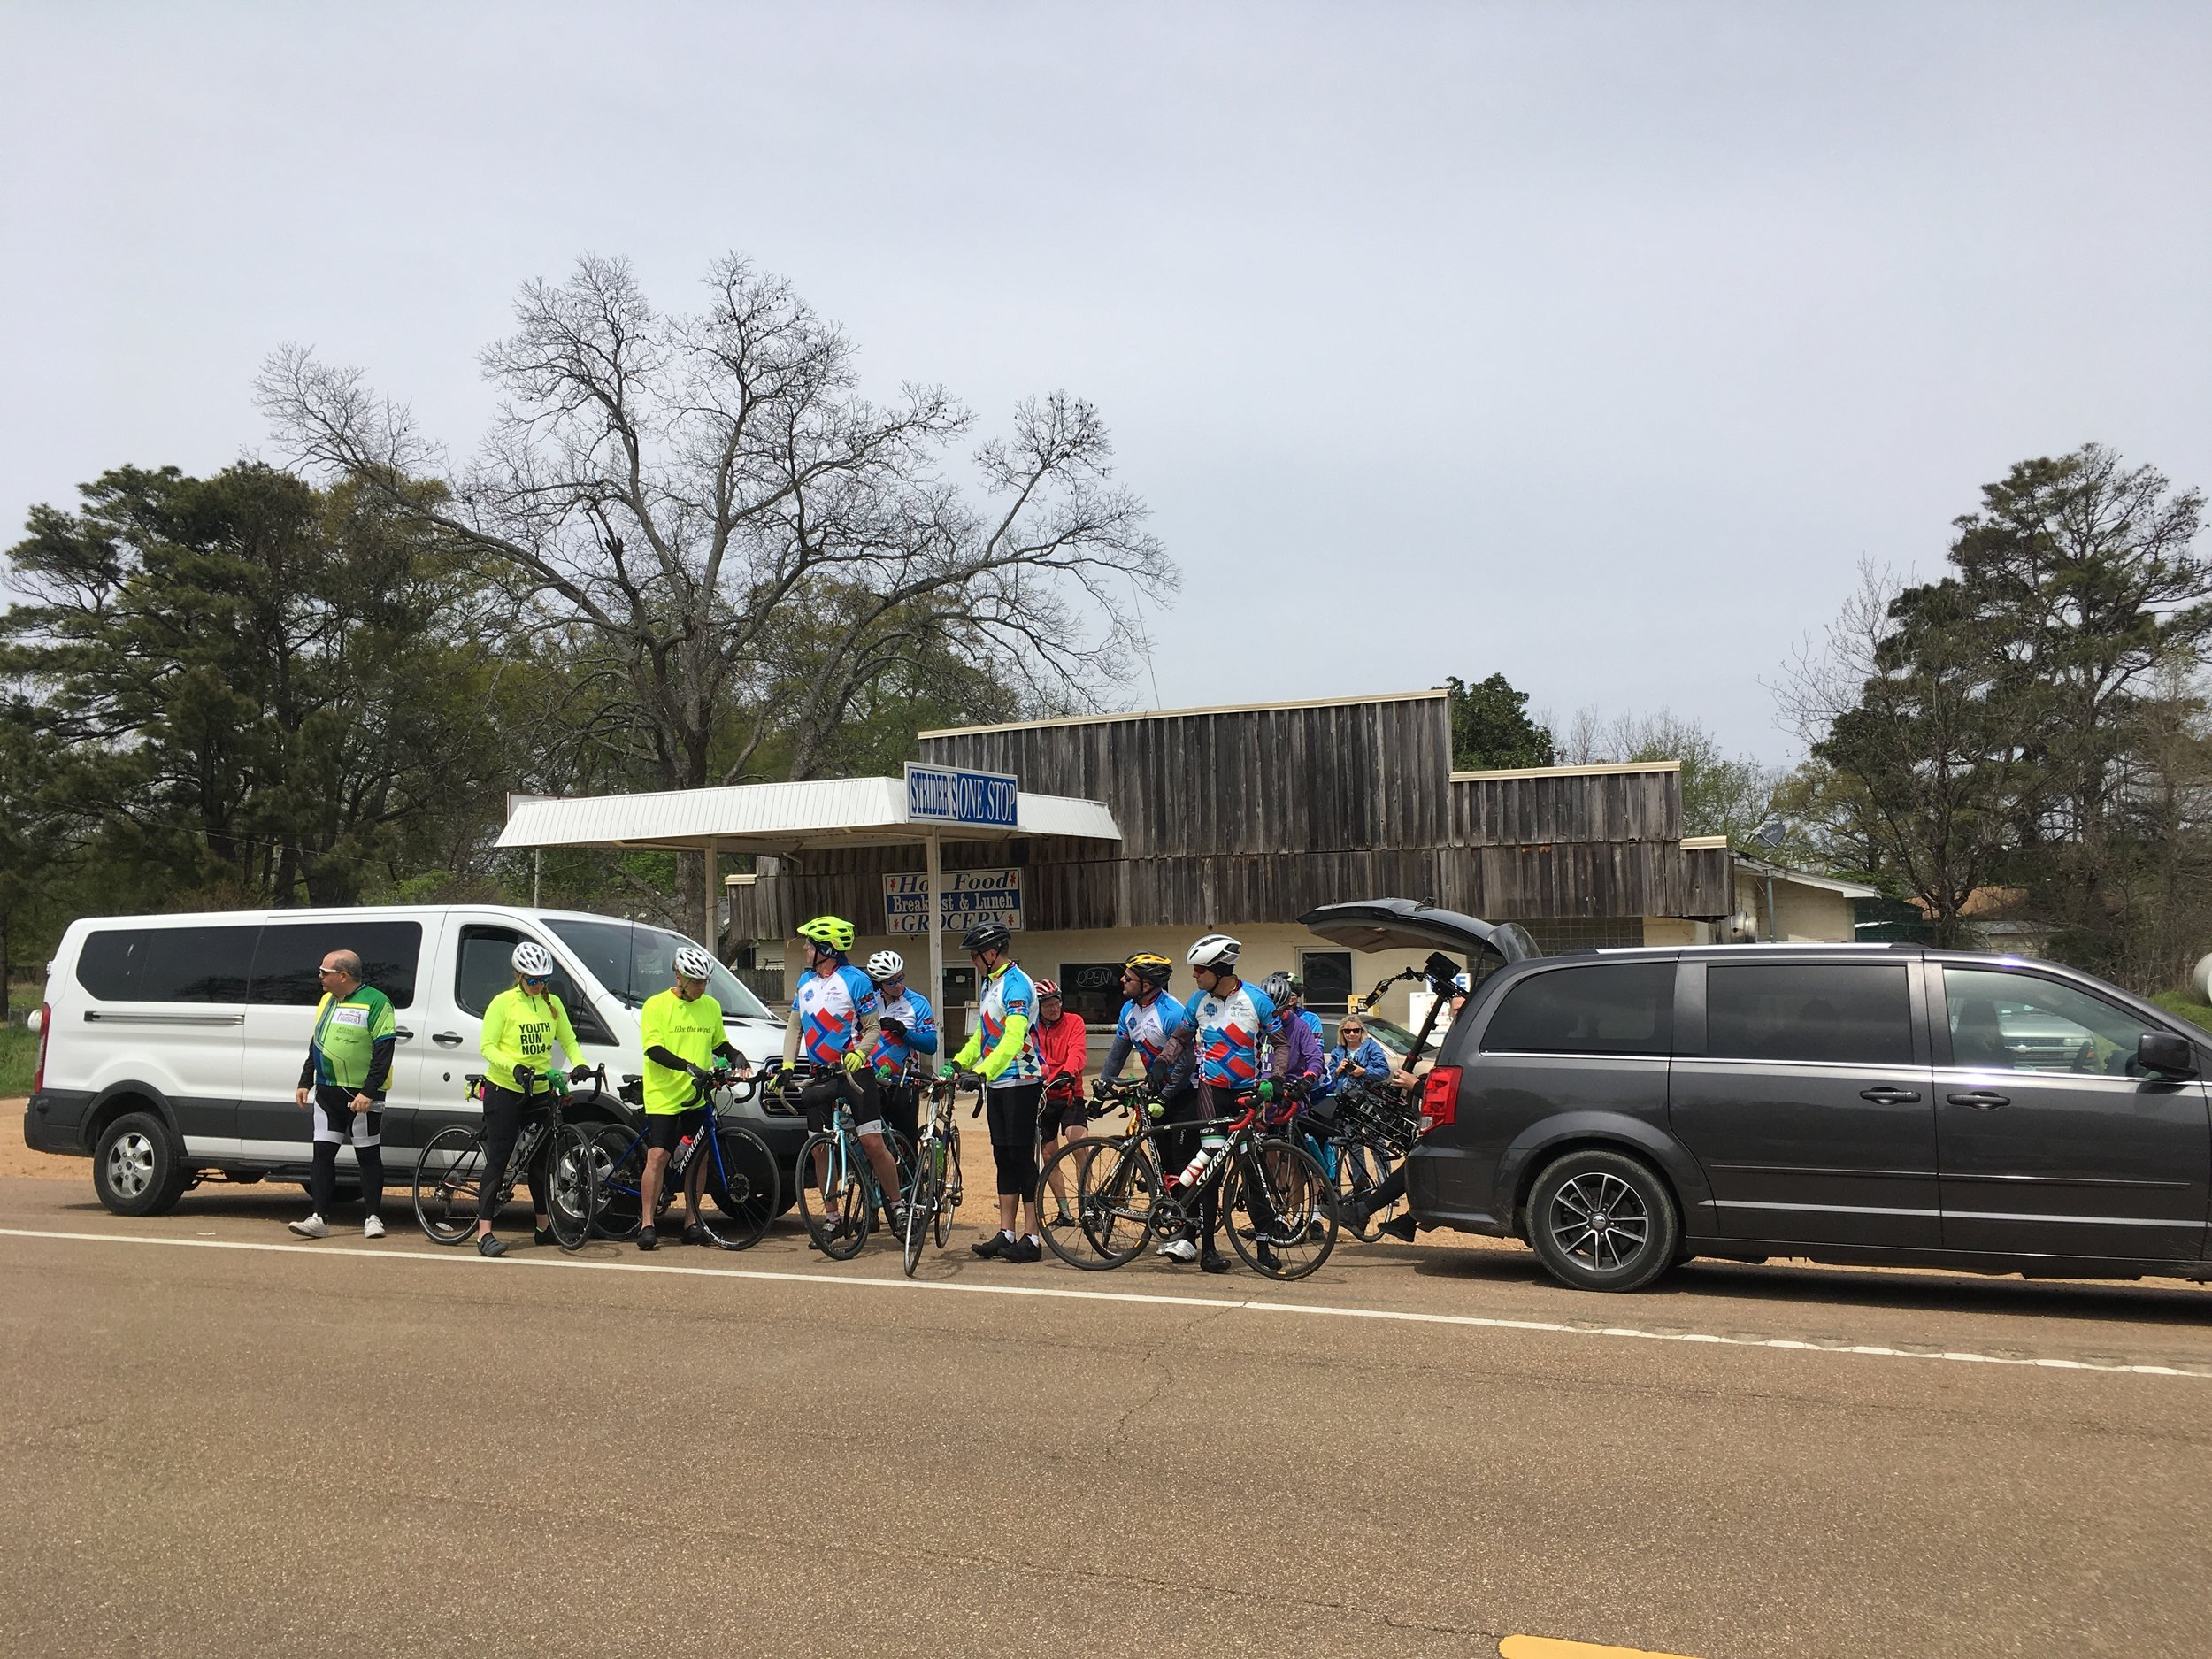 Stop 2 at Phillip, MS on the way to Holcomb, ending the day in Winona, MS.